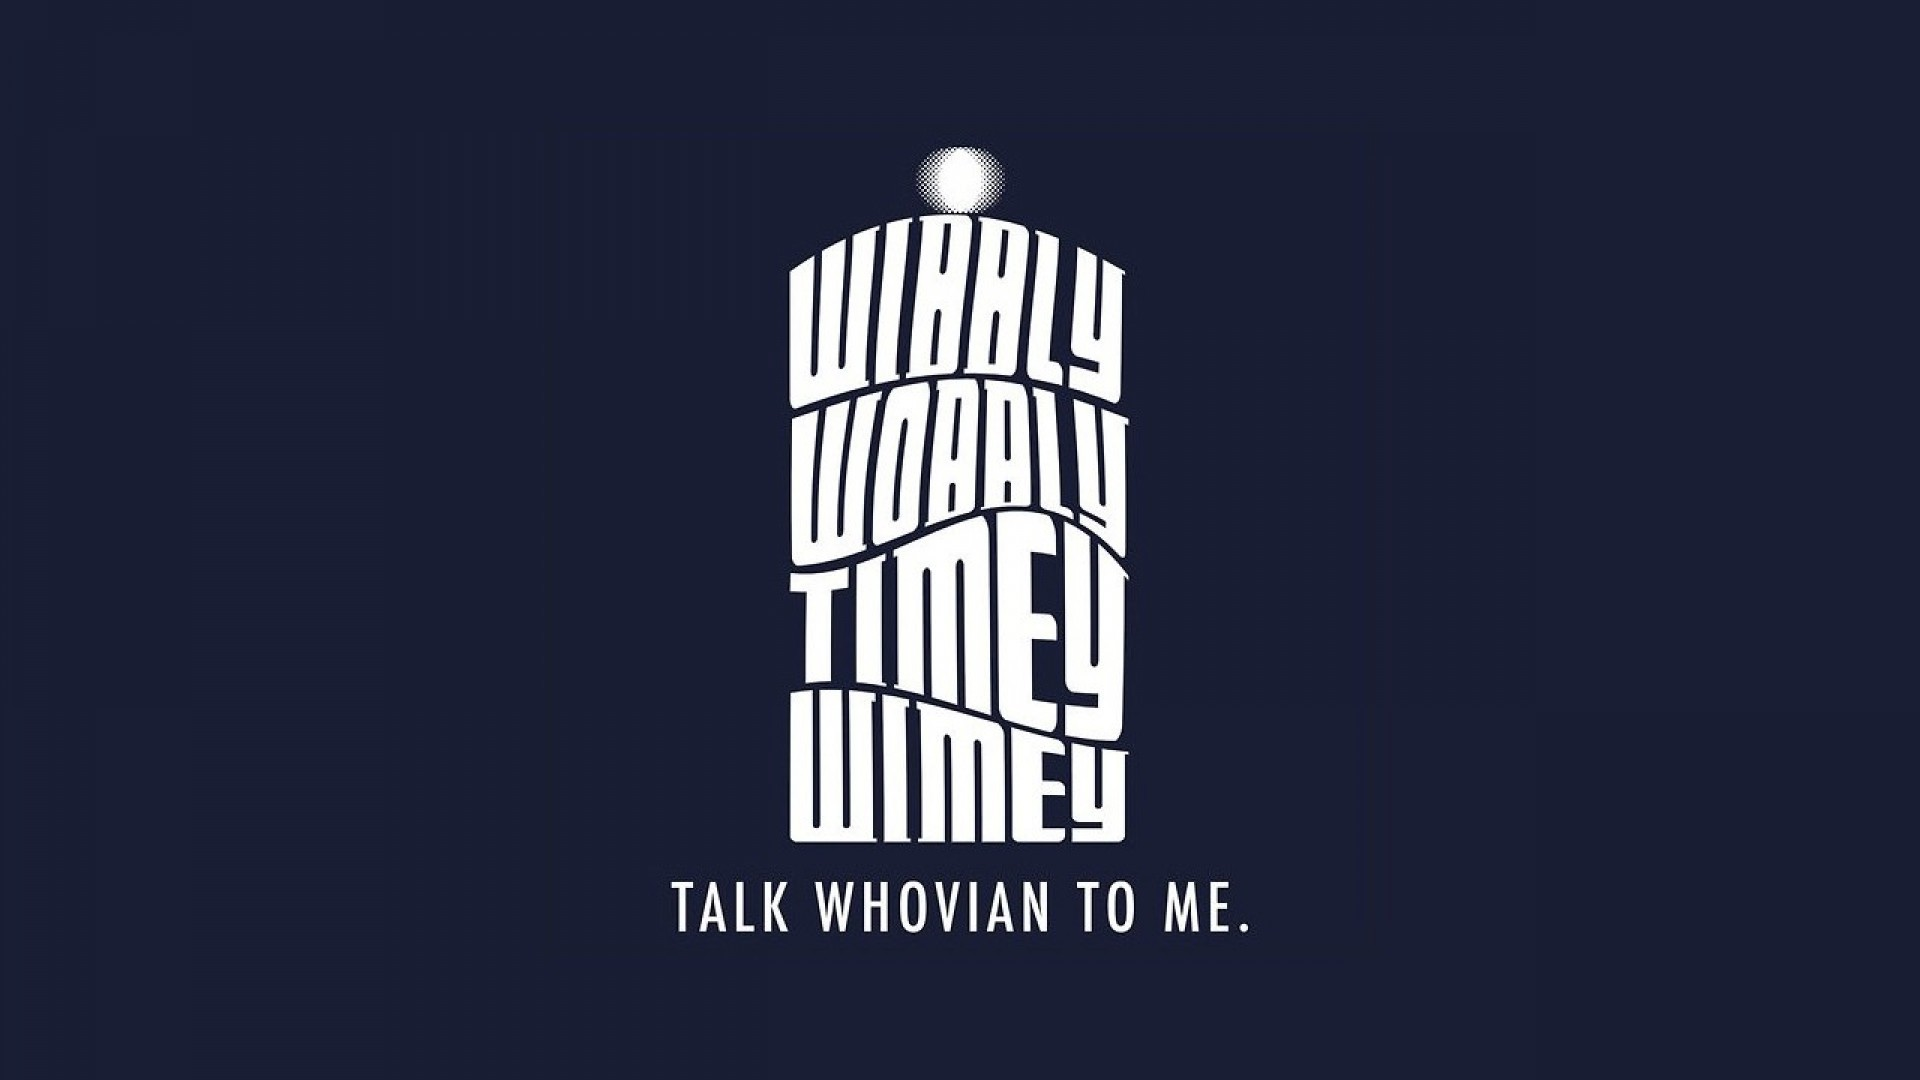 Top Collection of Doctor Who Tardis Wallpapers Doctor Who Tardis   HD  Wallpapers   Pinterest   Live wallpapers, Wallpaper and Wallpaper art